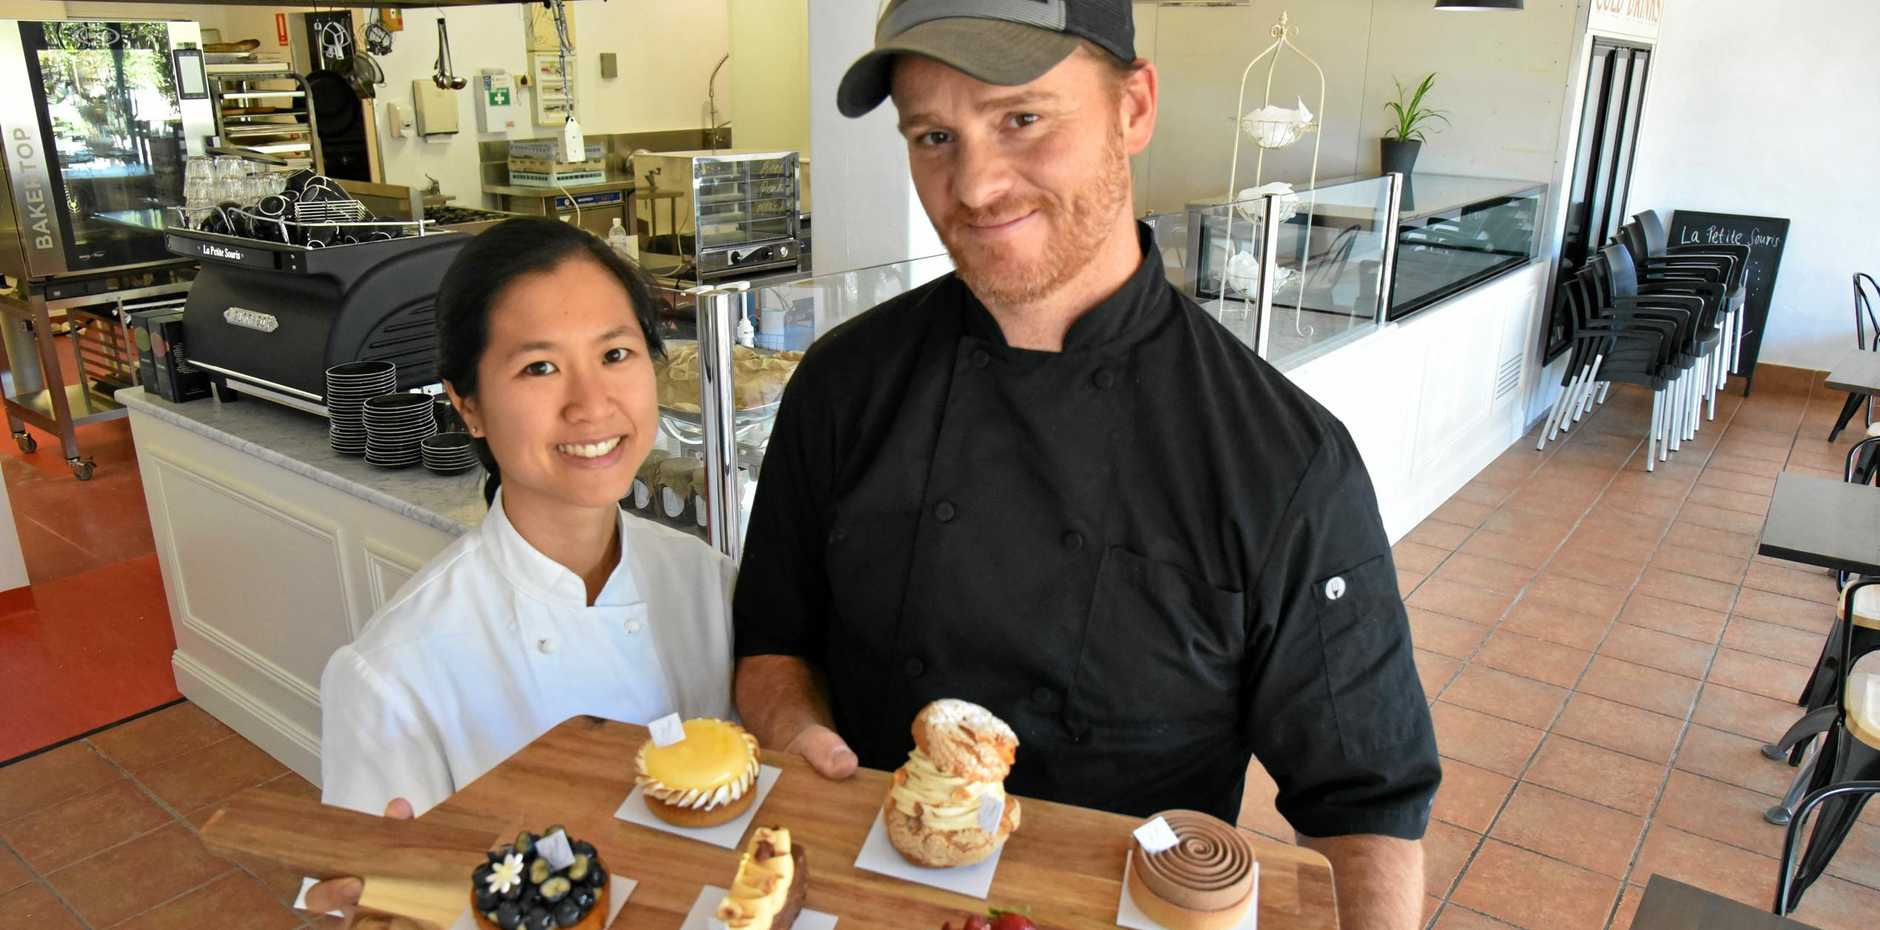 OUI OUI MON CHERI: Amie and Pierre Surieux are the owners of new French patisserie, La Petite Souris, at Alexandra Headland.